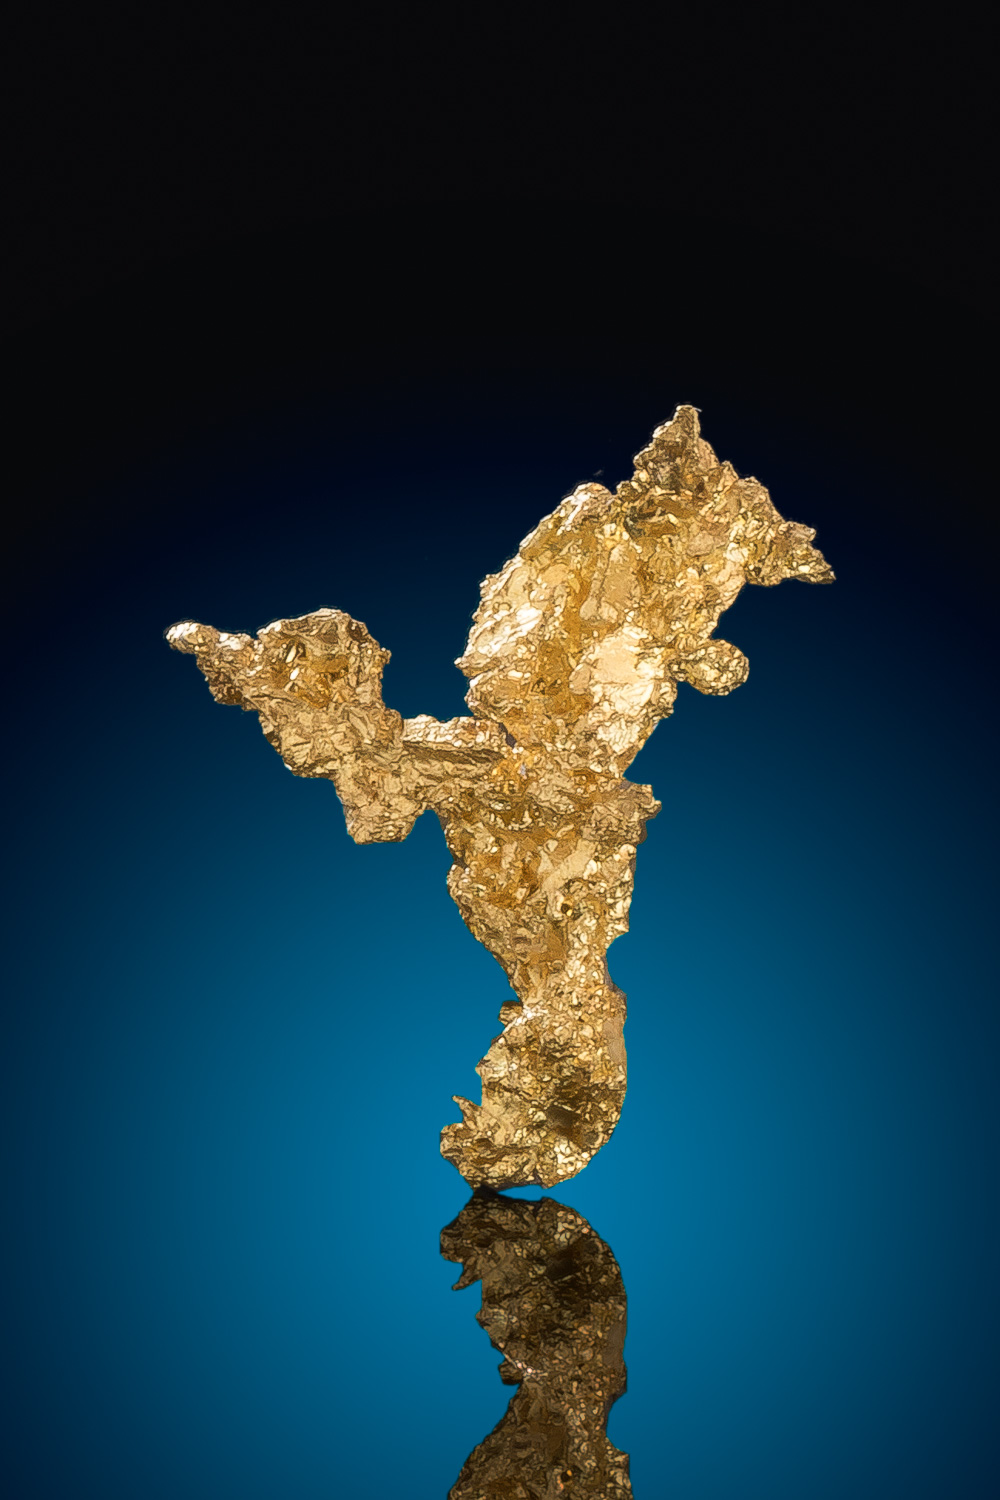 Sharp Crystalline Gold Nugget Specimen - Eagles Nest Gold Mine